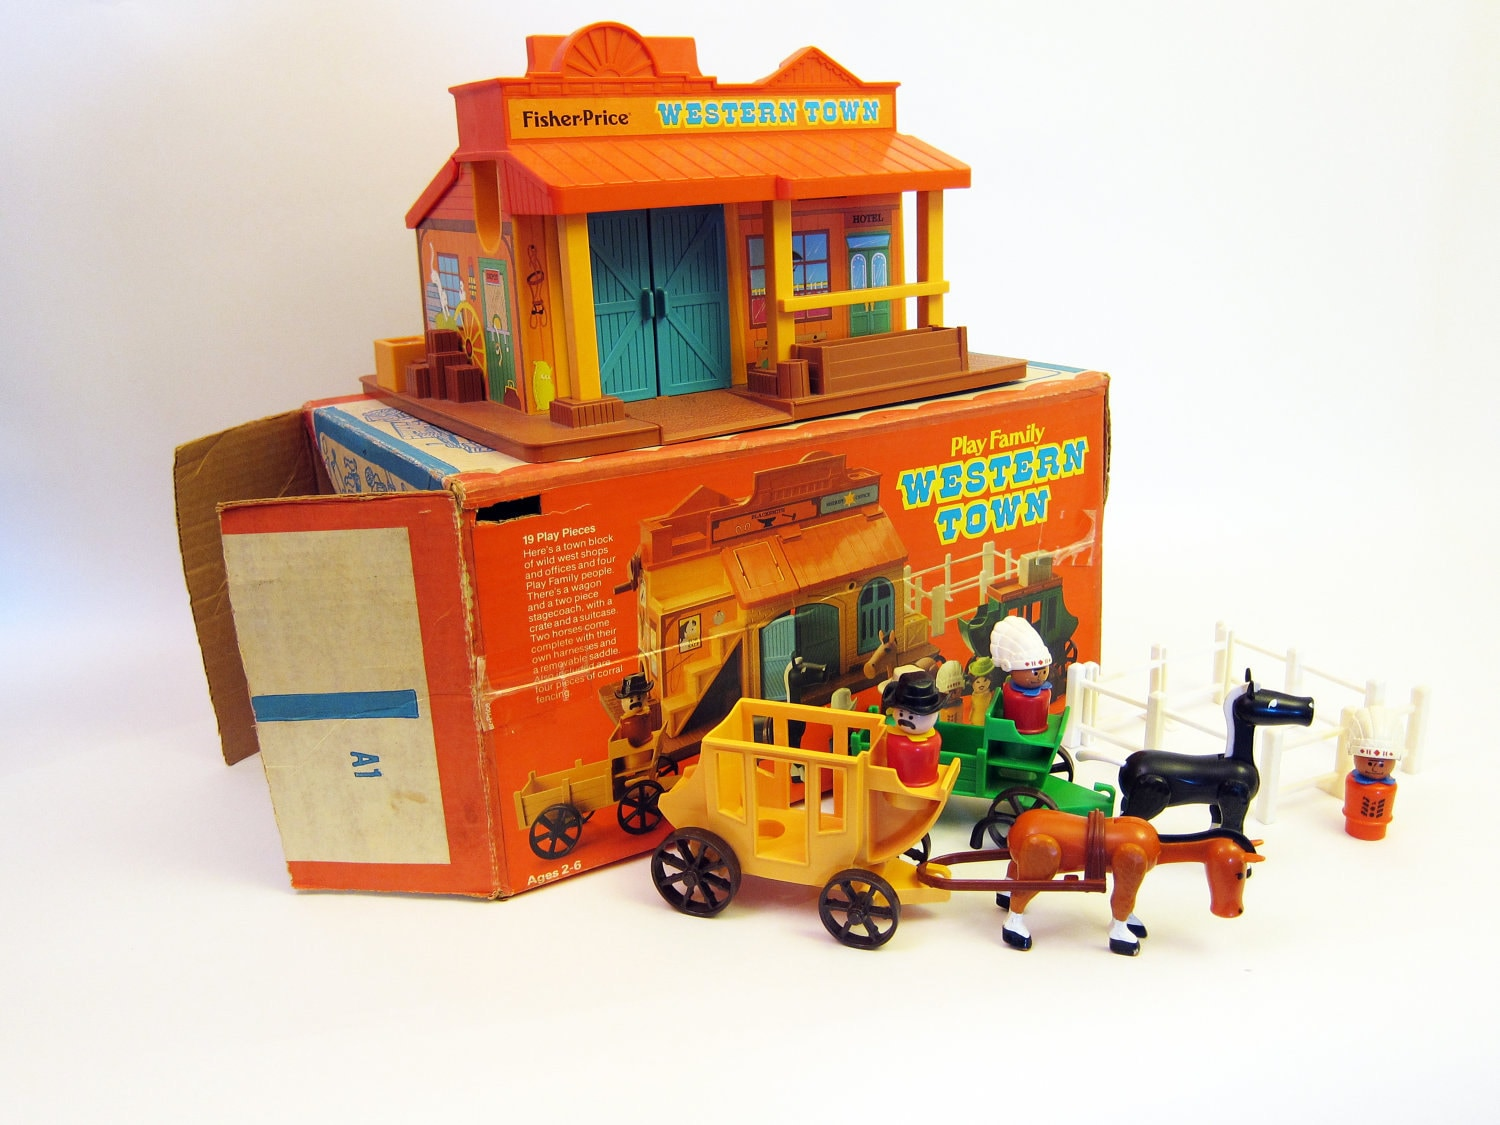 Classic Fisher Price Toys : Vintage fisher price western town with little people toy